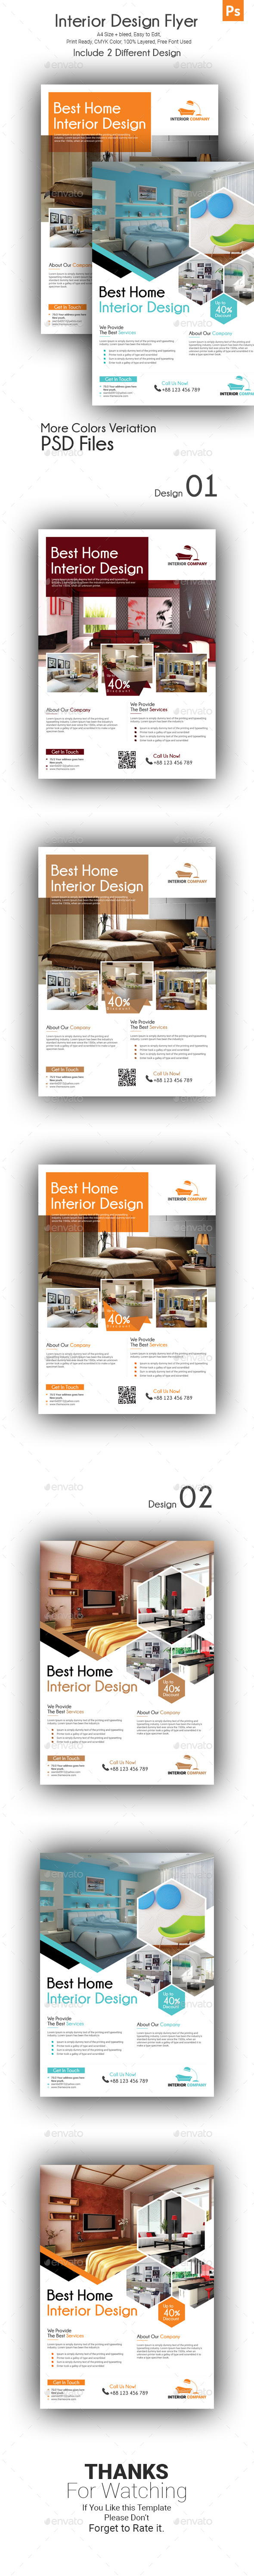 GraphicRiver Interior Design Flyer 21162914